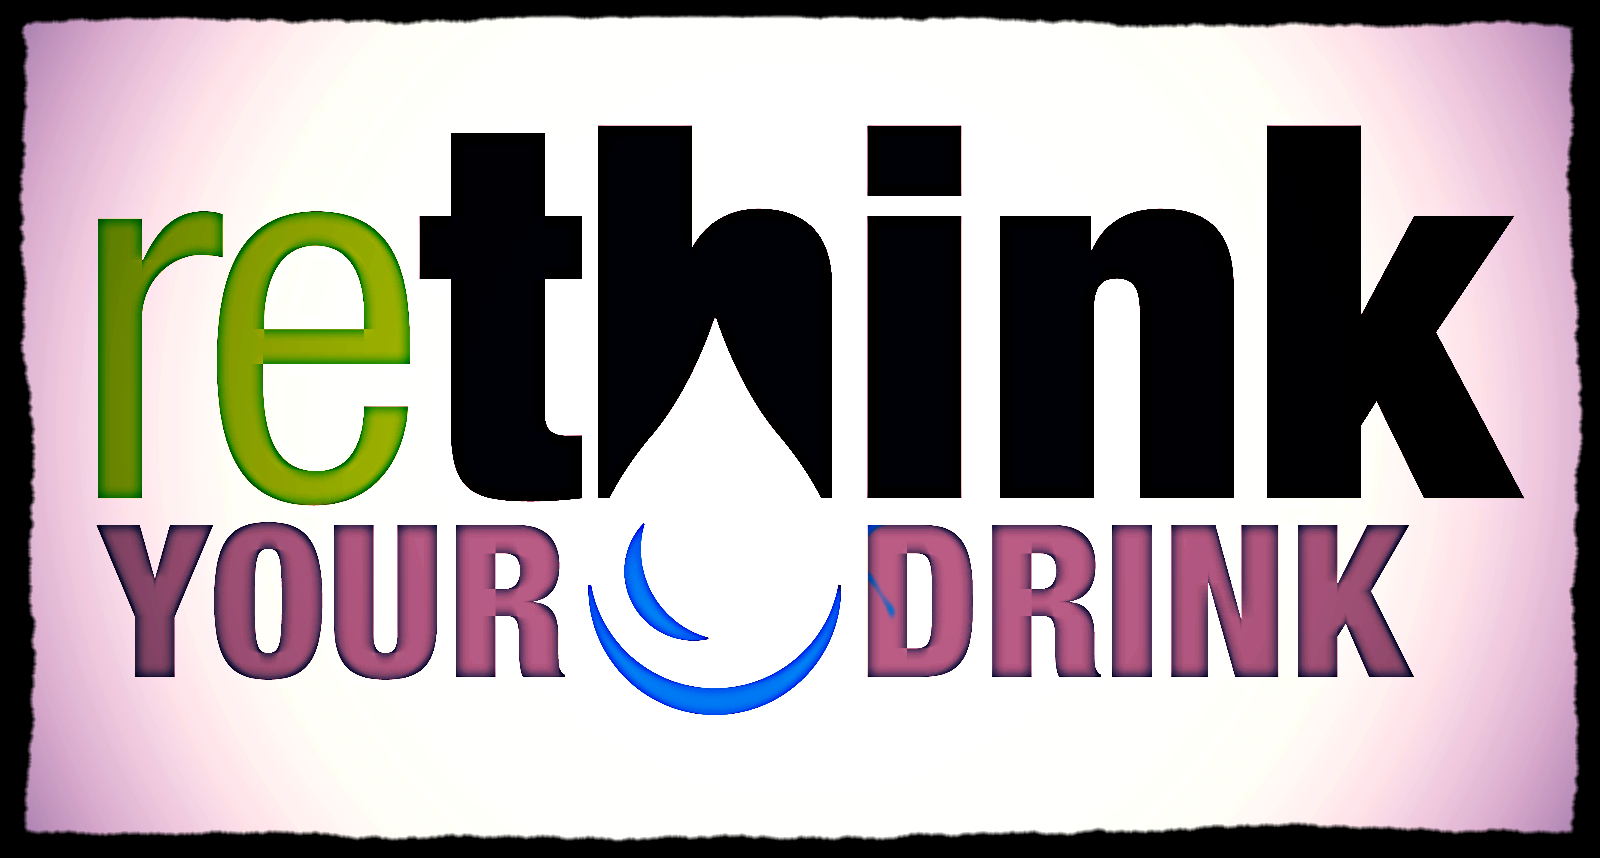 Singers, rethink your drink!